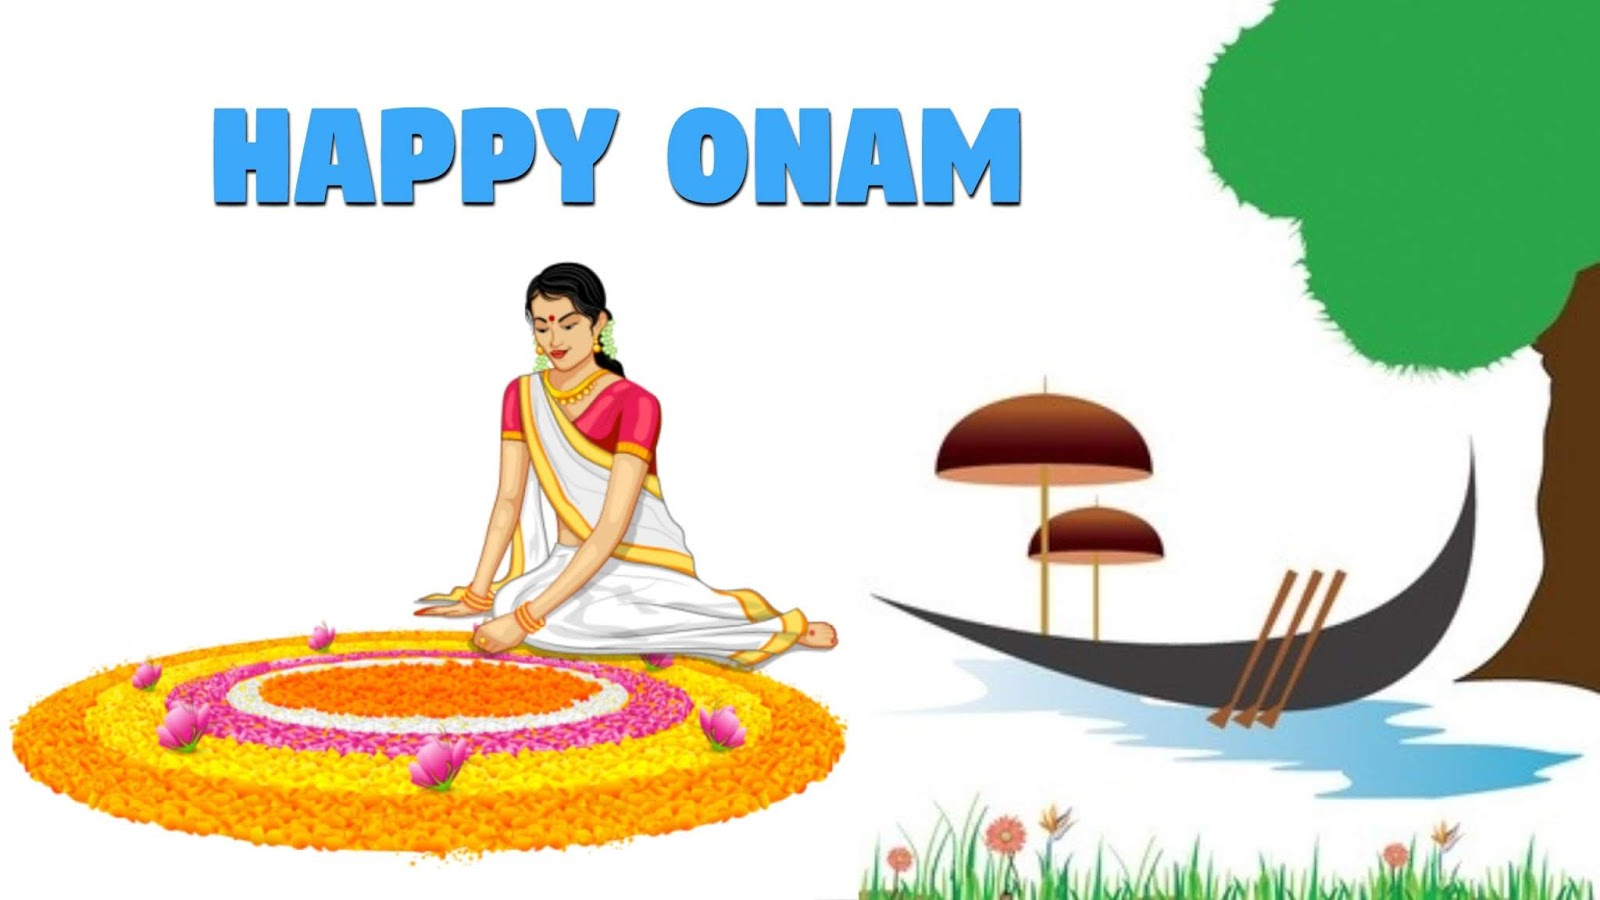 (Best) 50+ Happy Onam Quotes, Wishes, Images and Messages for Year 2019